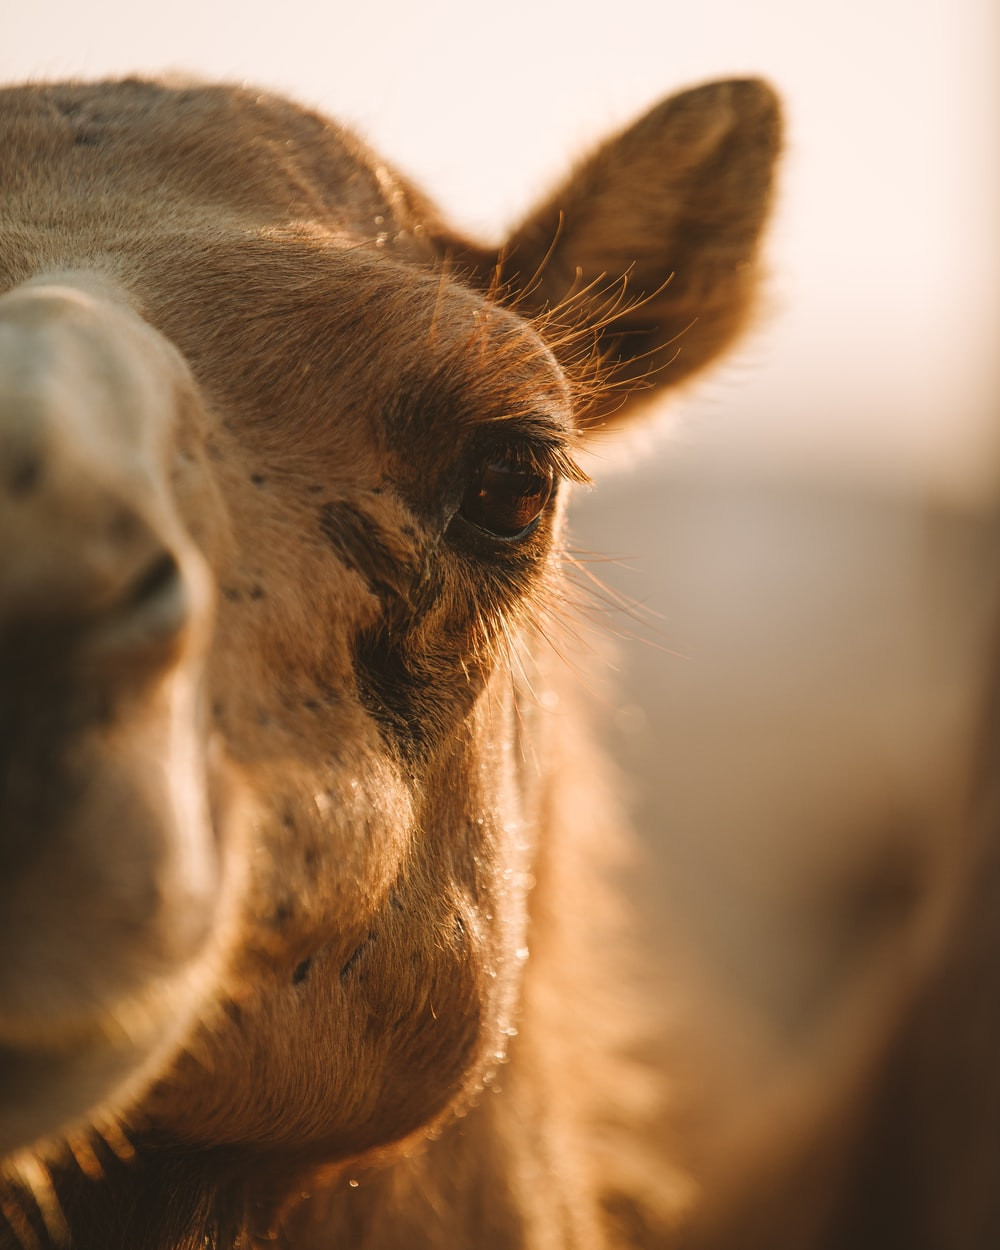 brown horse head in close up photography